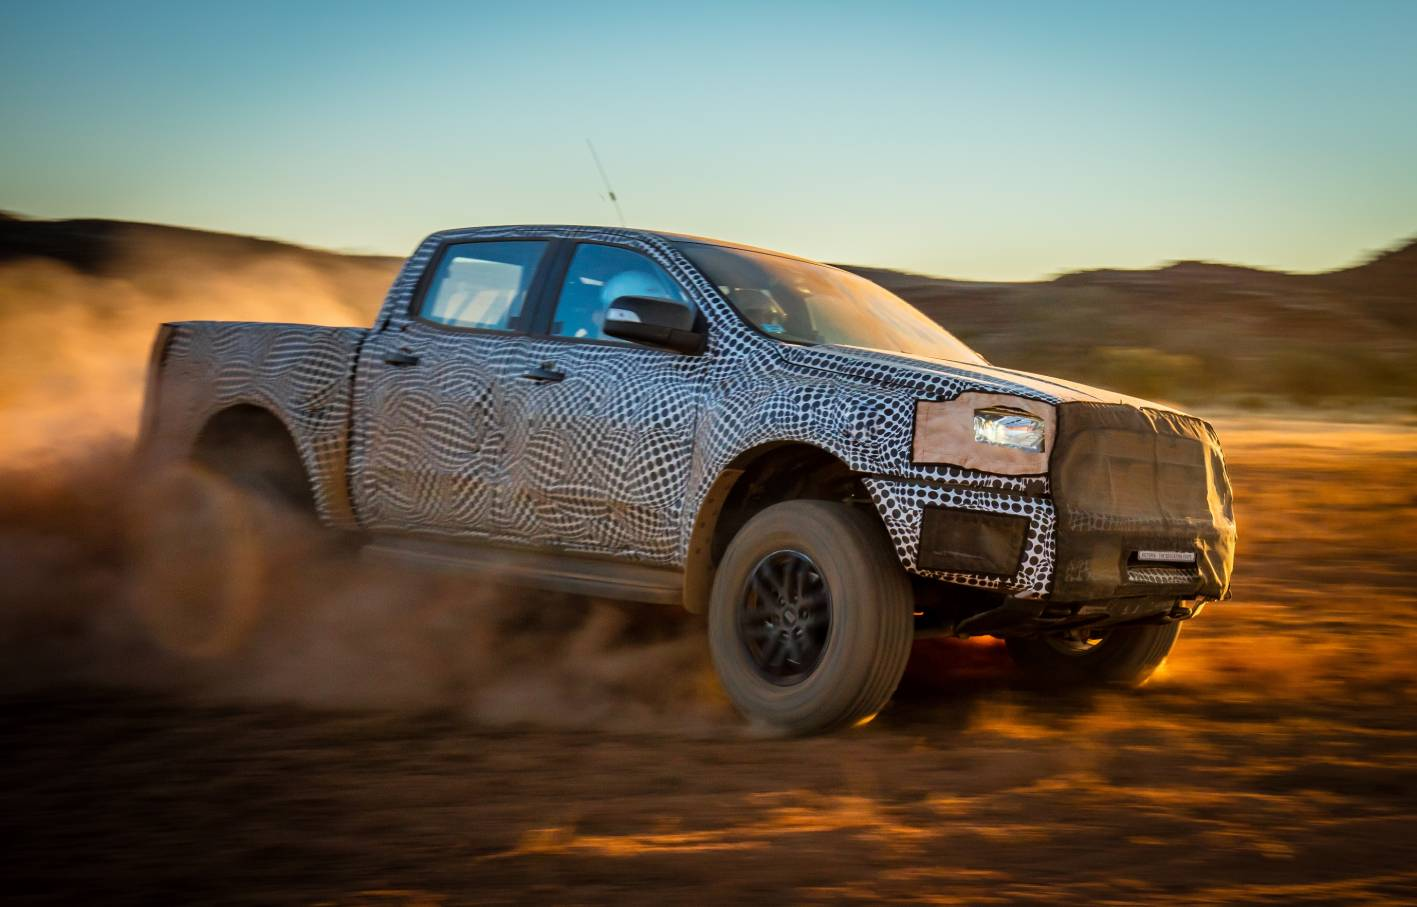 2018 hyundai ute. plain ute thereu0027s even a hyundai ute on its way at the turn of decade to conquer  hilux before then here are our top 10 best dualcab utes we most excited  with 2018 hyundai